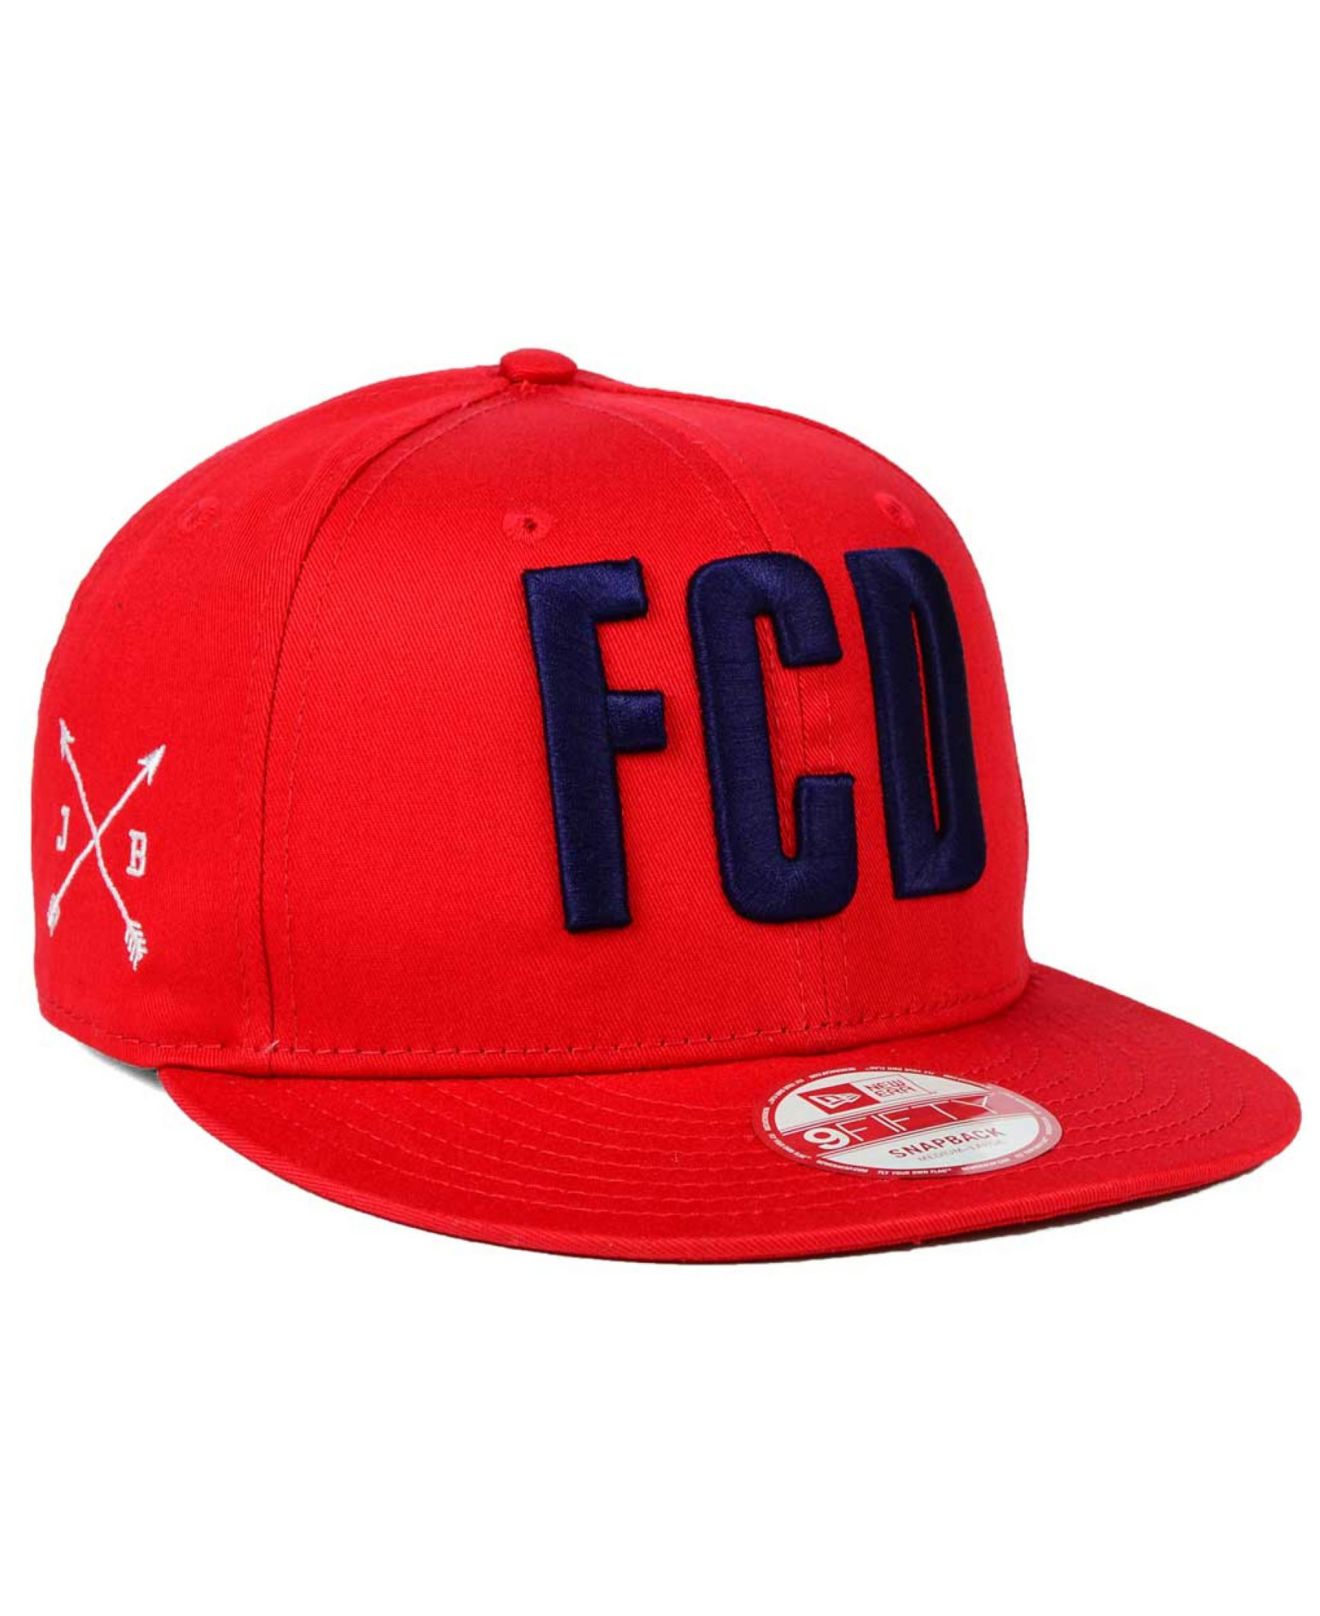 1542b664 norway fc dallas snapback 8b23e c8c57